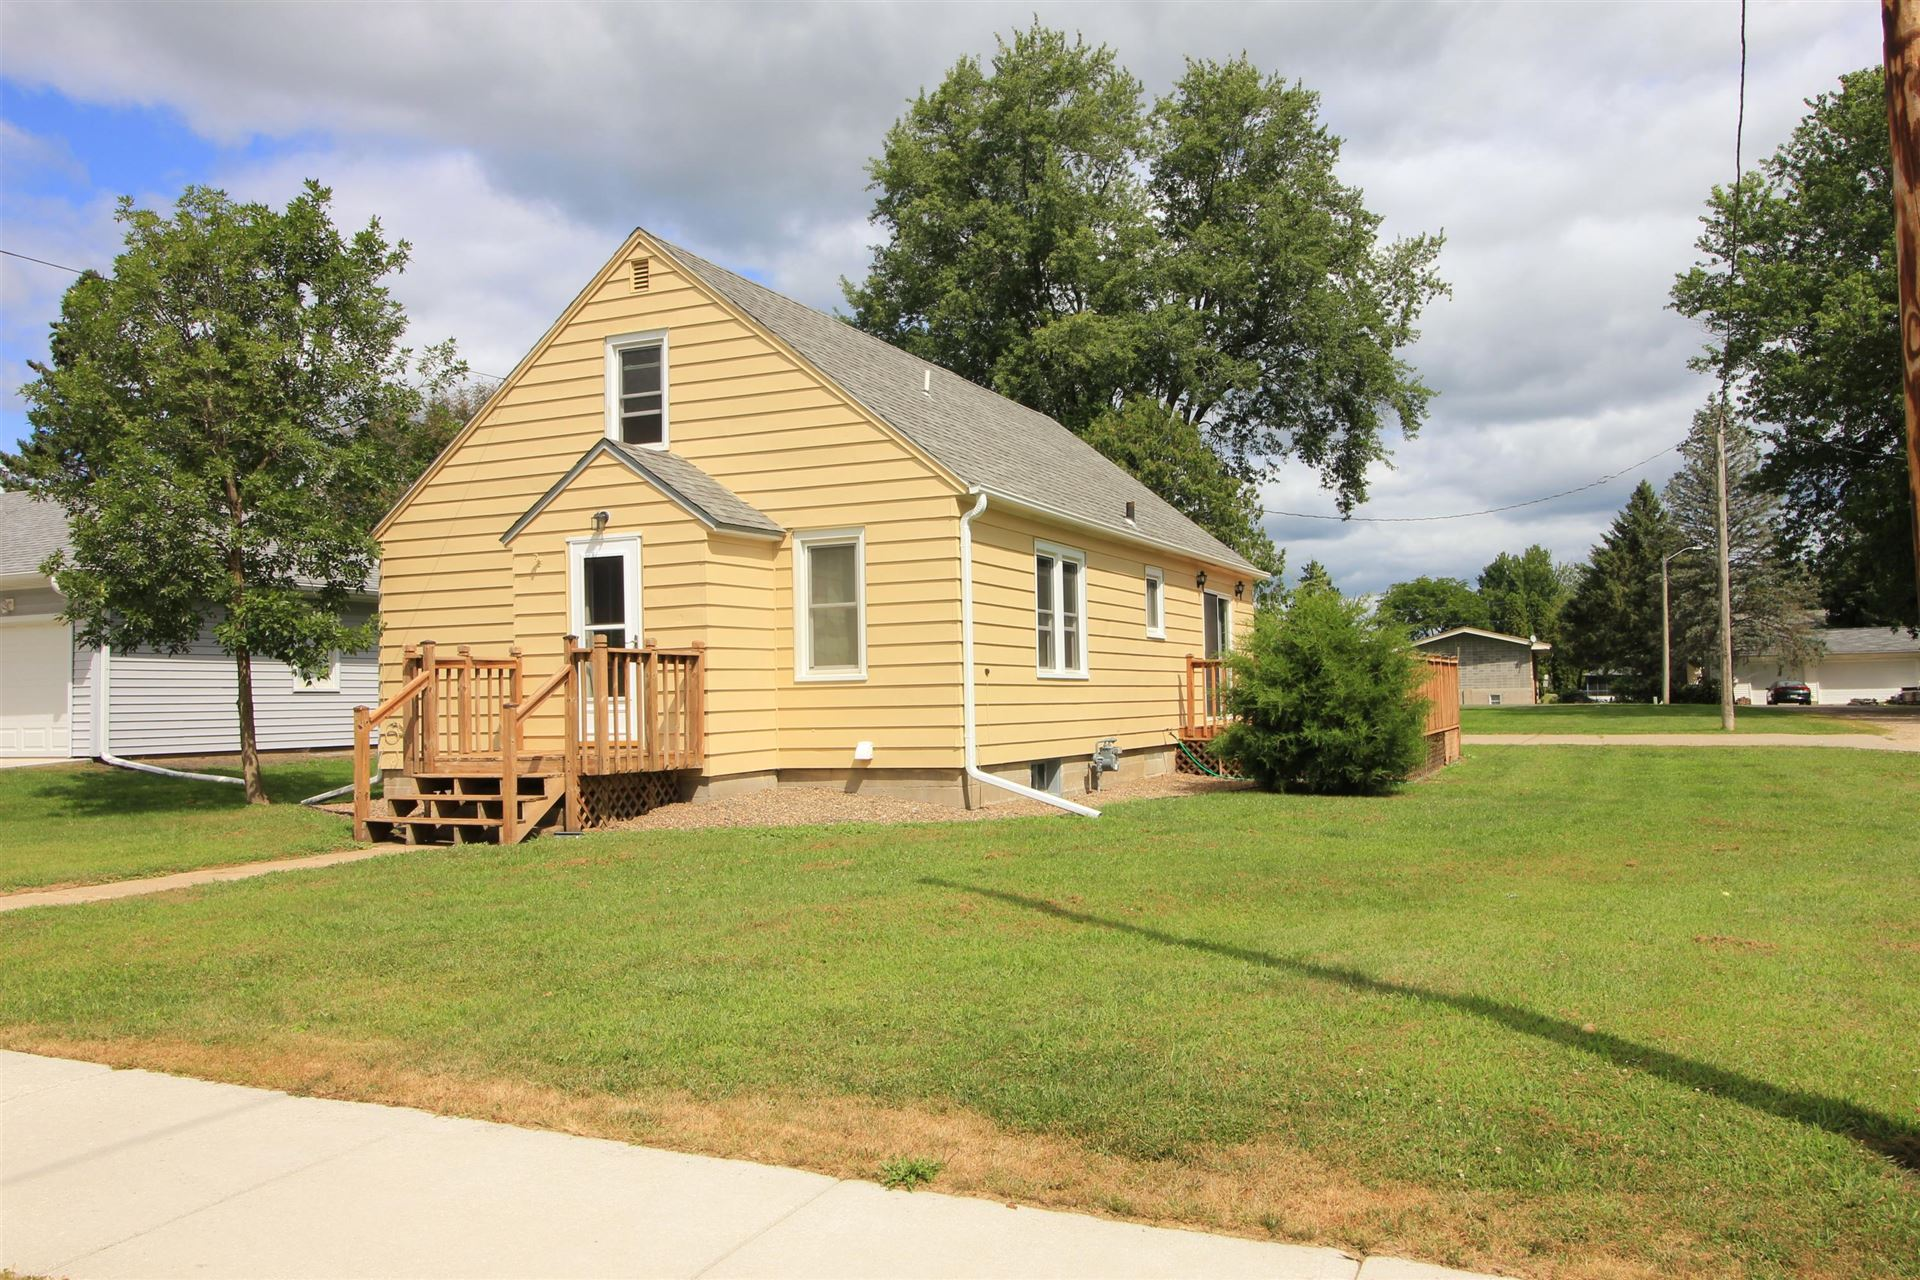 900 Central Ave, Sparta, WI 54656 - MLS#: 1702417